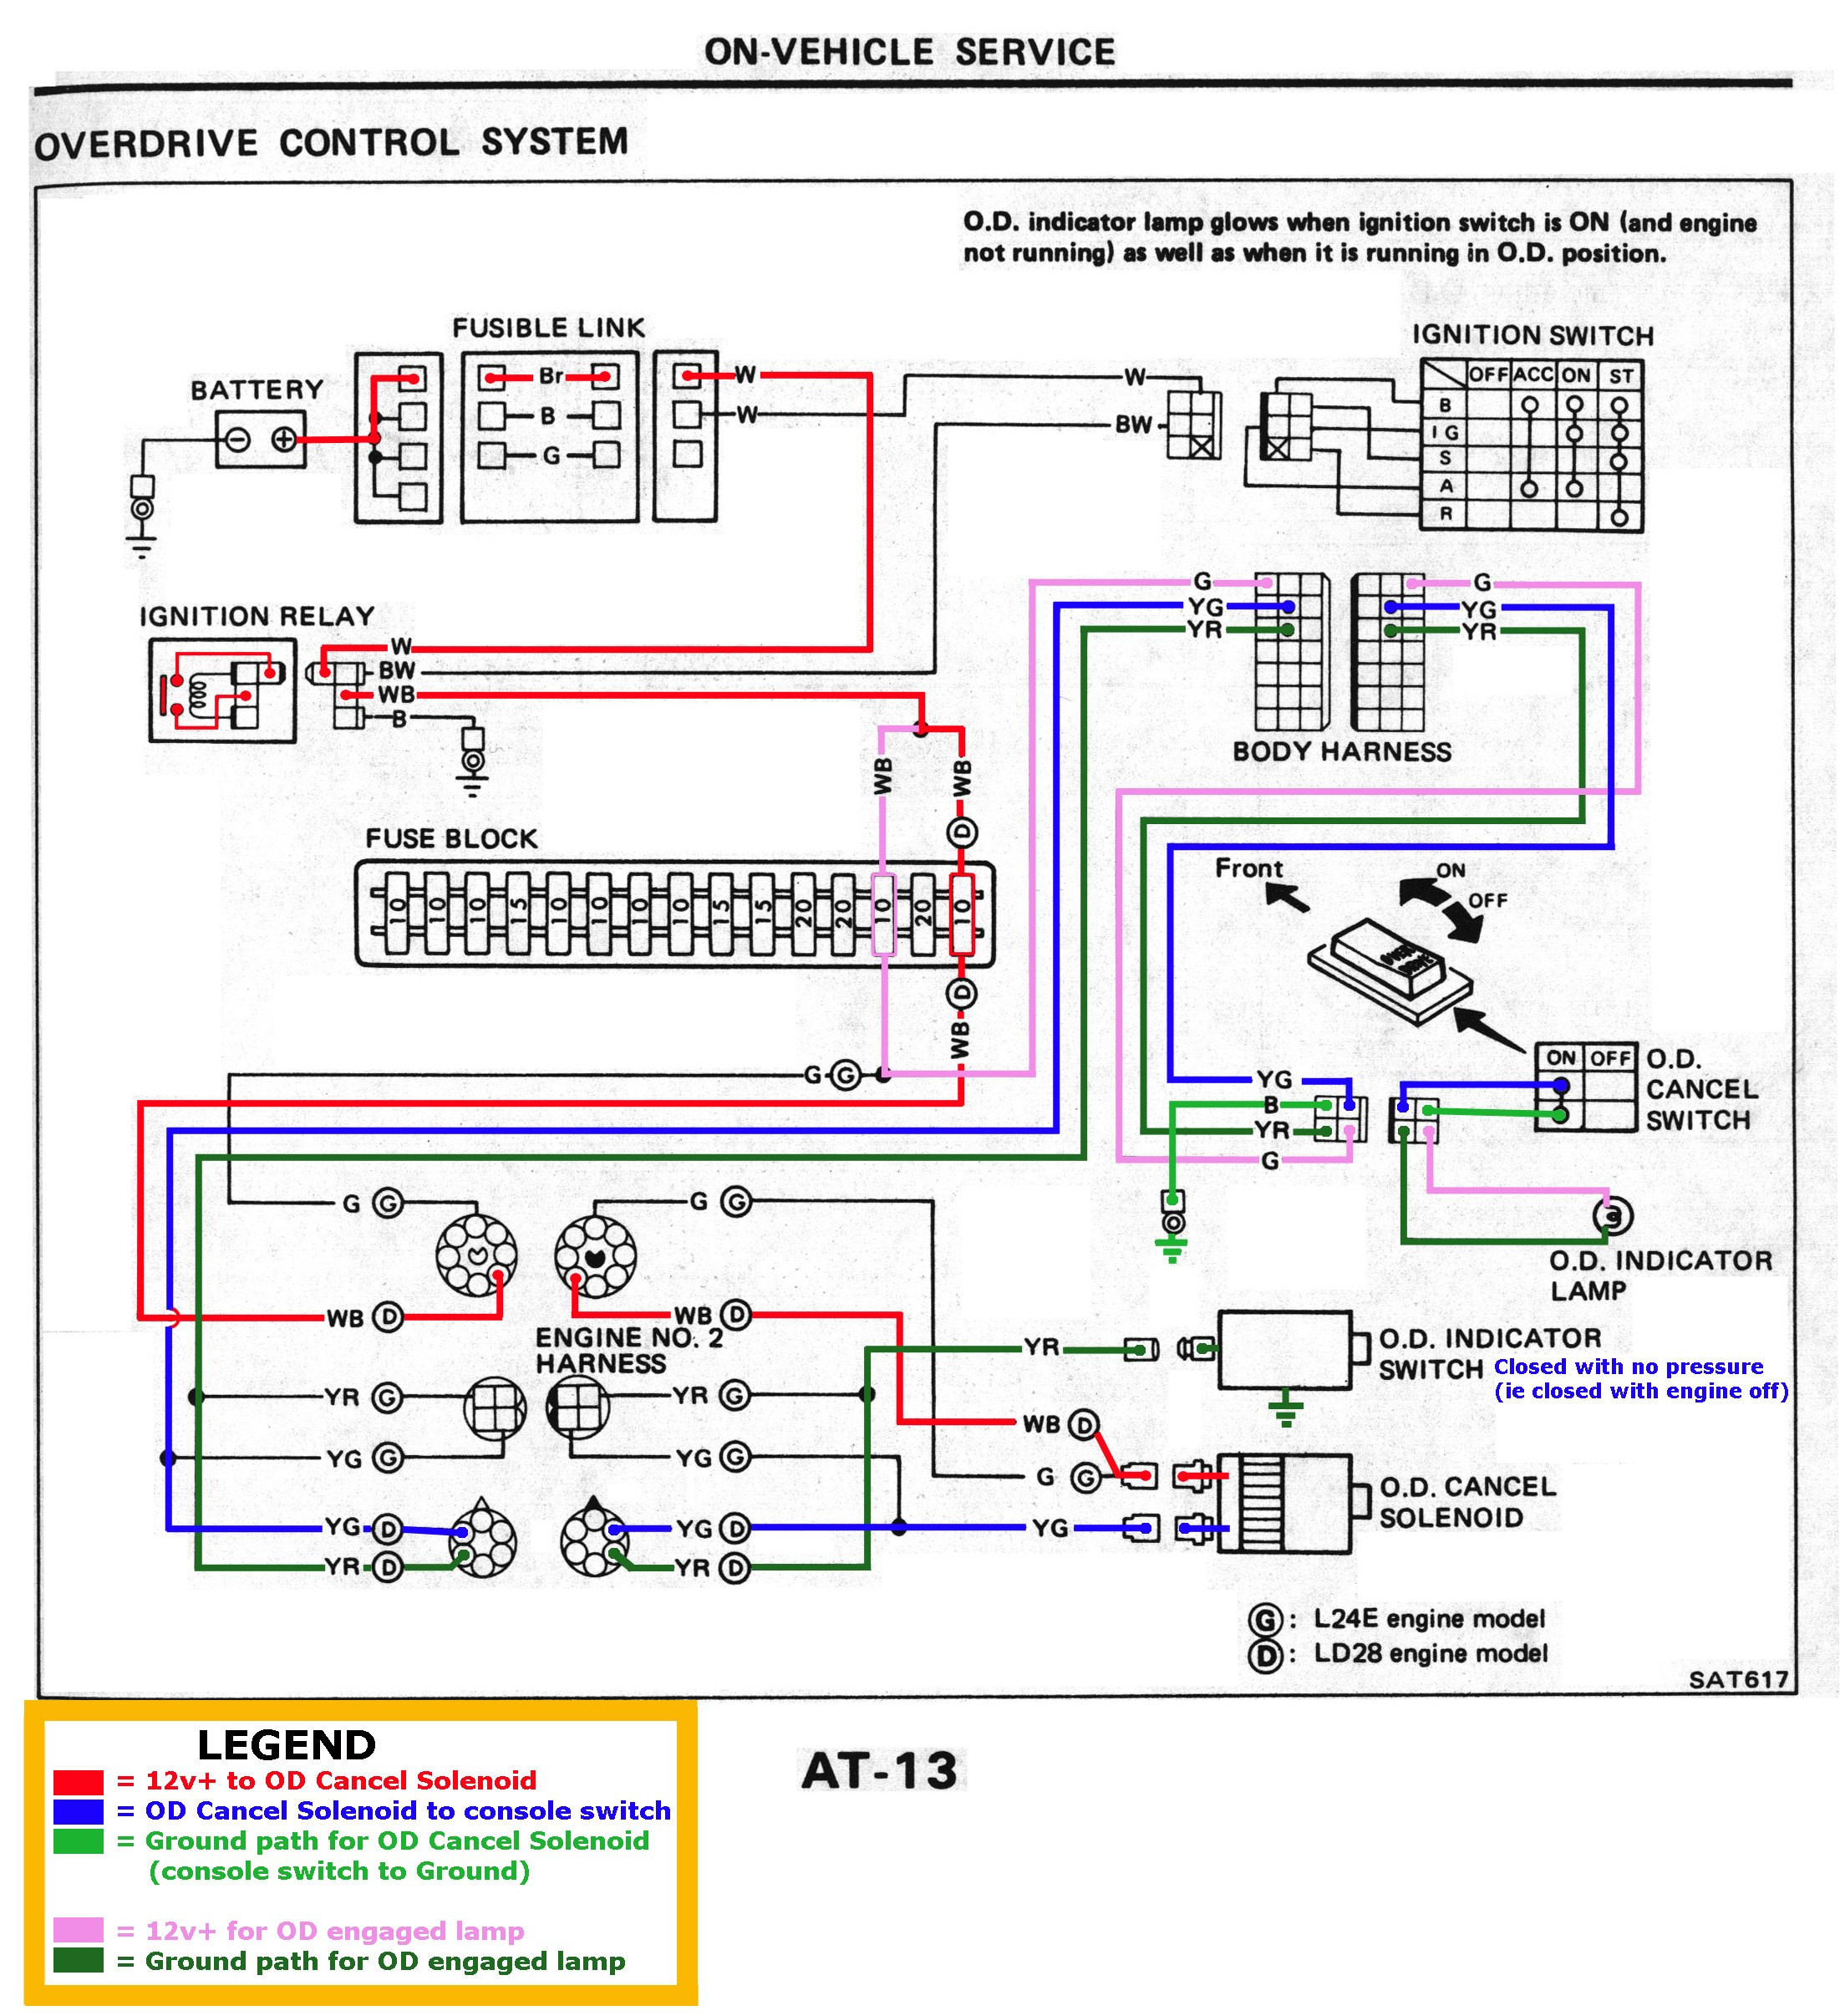 2006 Honda Civic Ignition Wiring Diagram